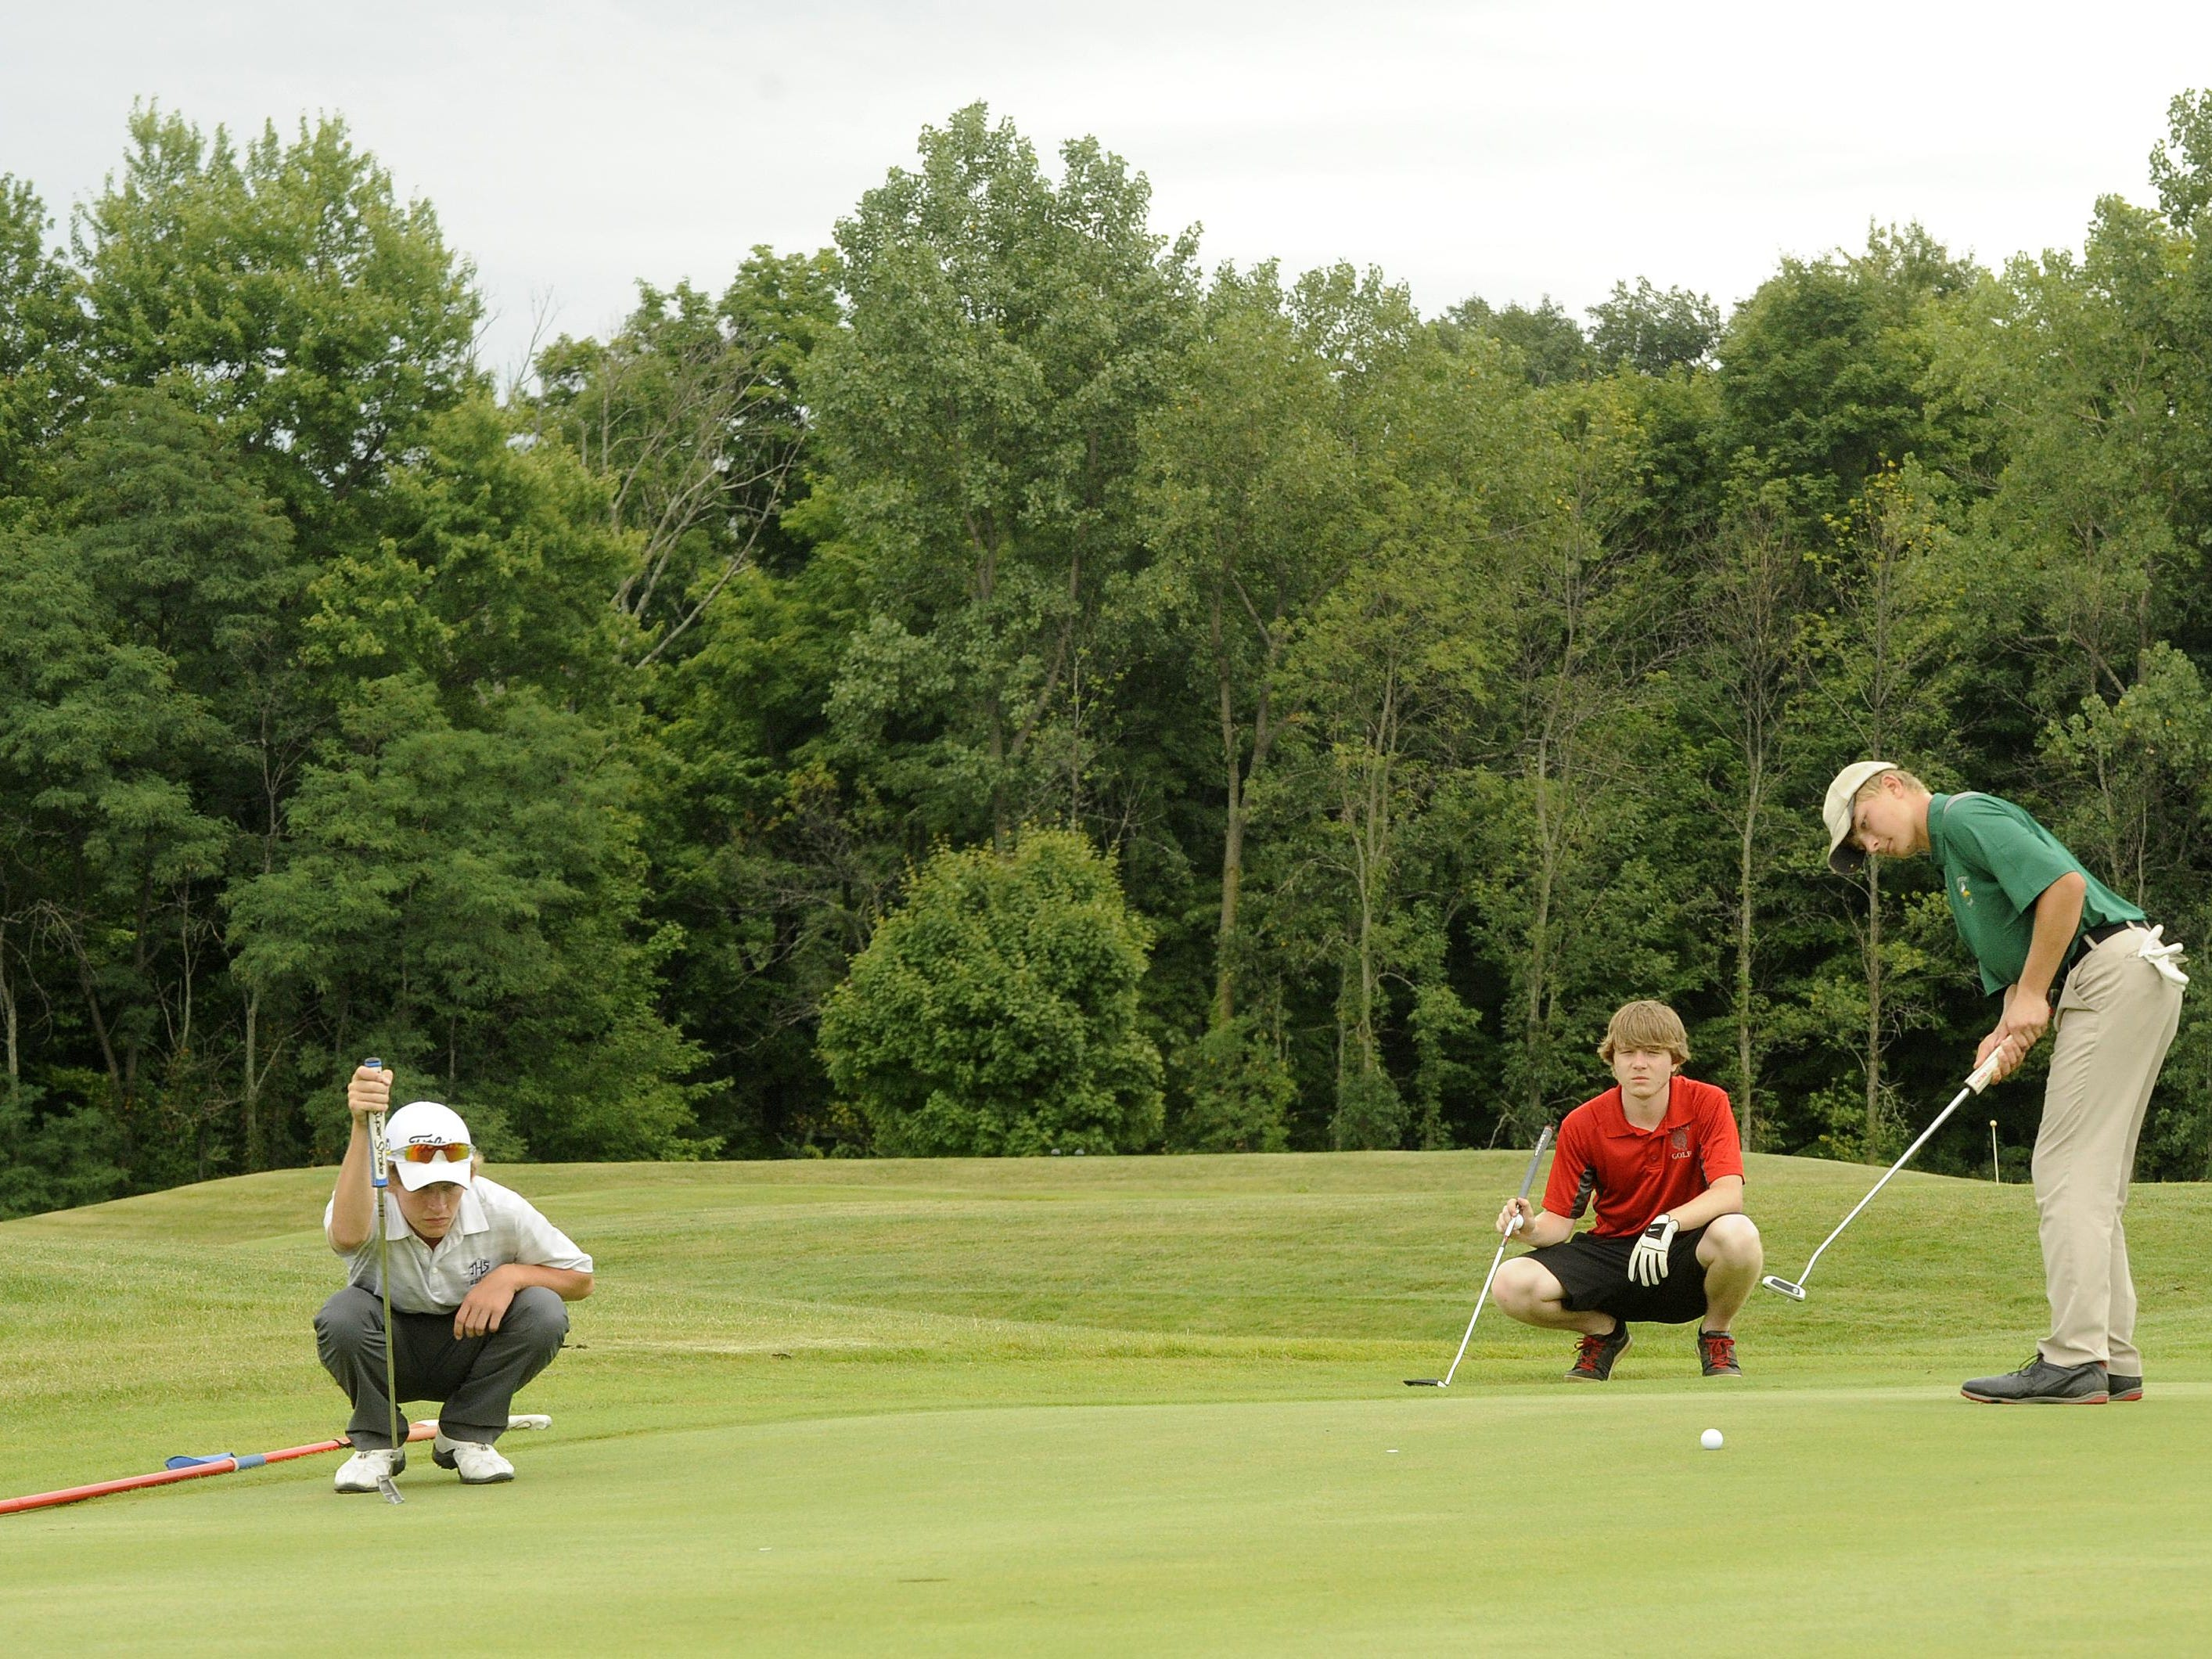 Johnstown's Jared Williams and Utica's Tyler Salyer read the green as Northridge's Jared Teeter putts on No. 18 during the Utica Invitational on Thursday at the Links at Echo Springs.